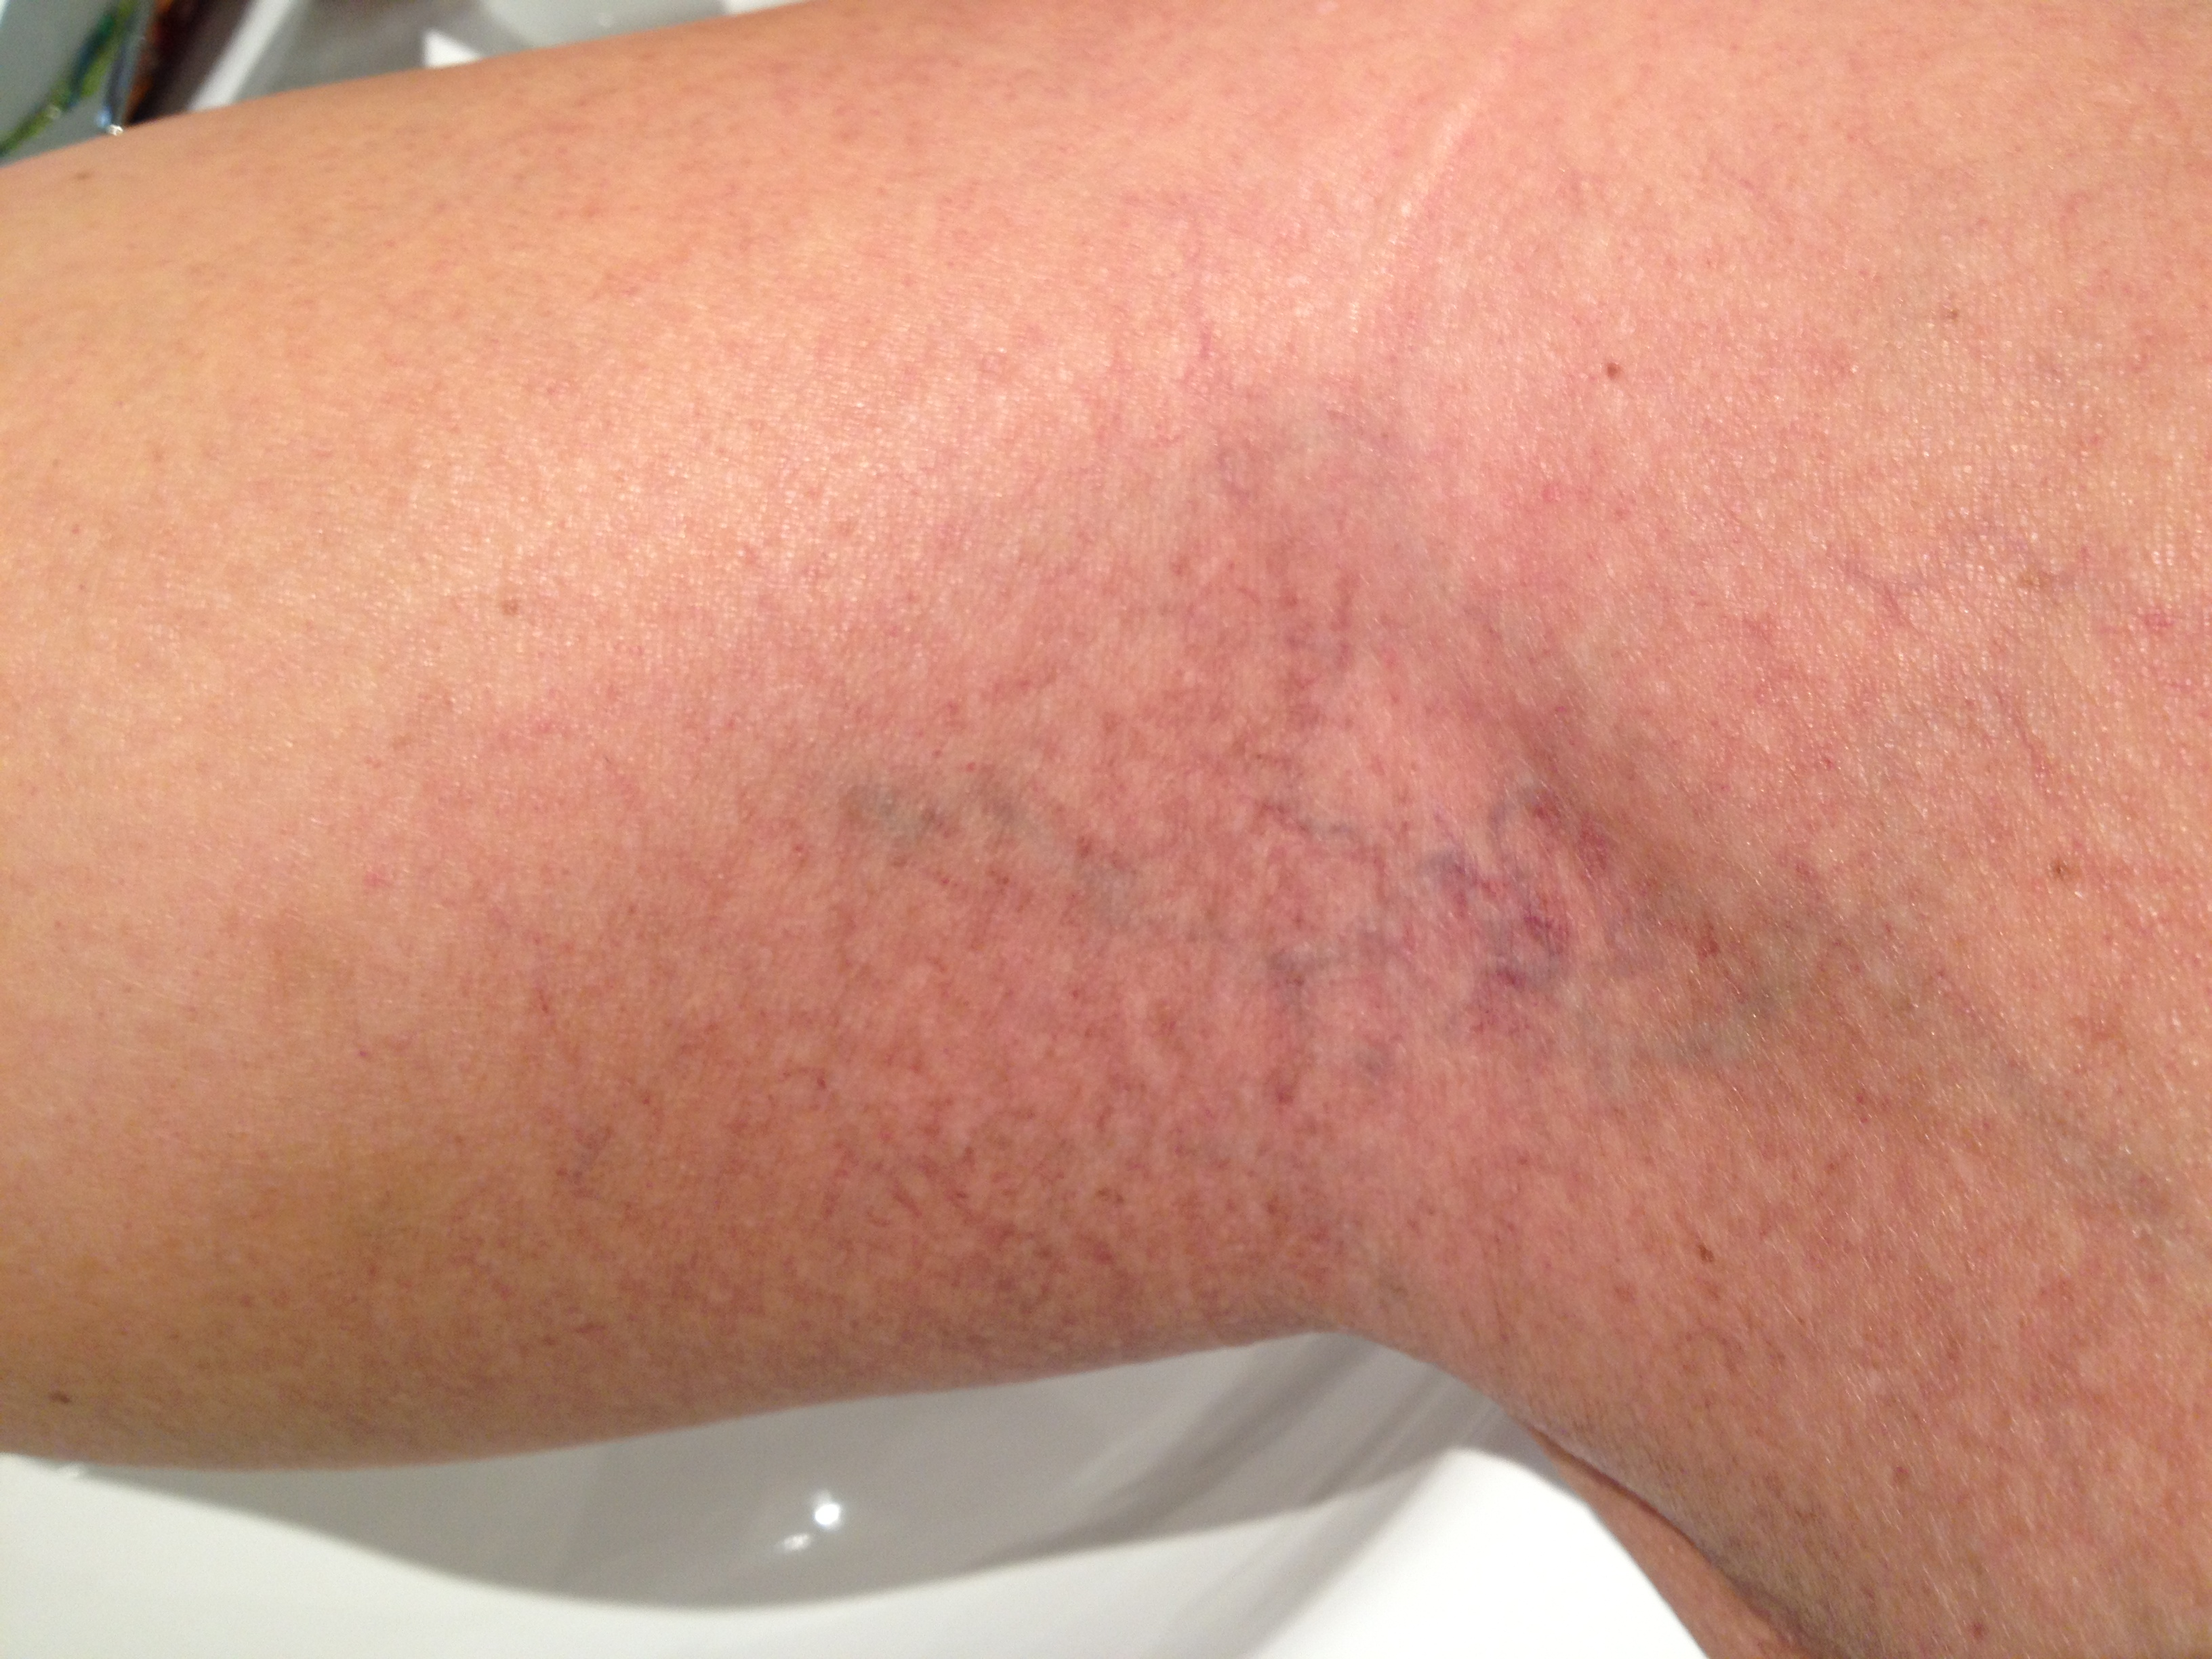 Bruises on Back of Calf http://www.justanswer.com/health/6ol65-year-ago-large-patches-looked-increased.html